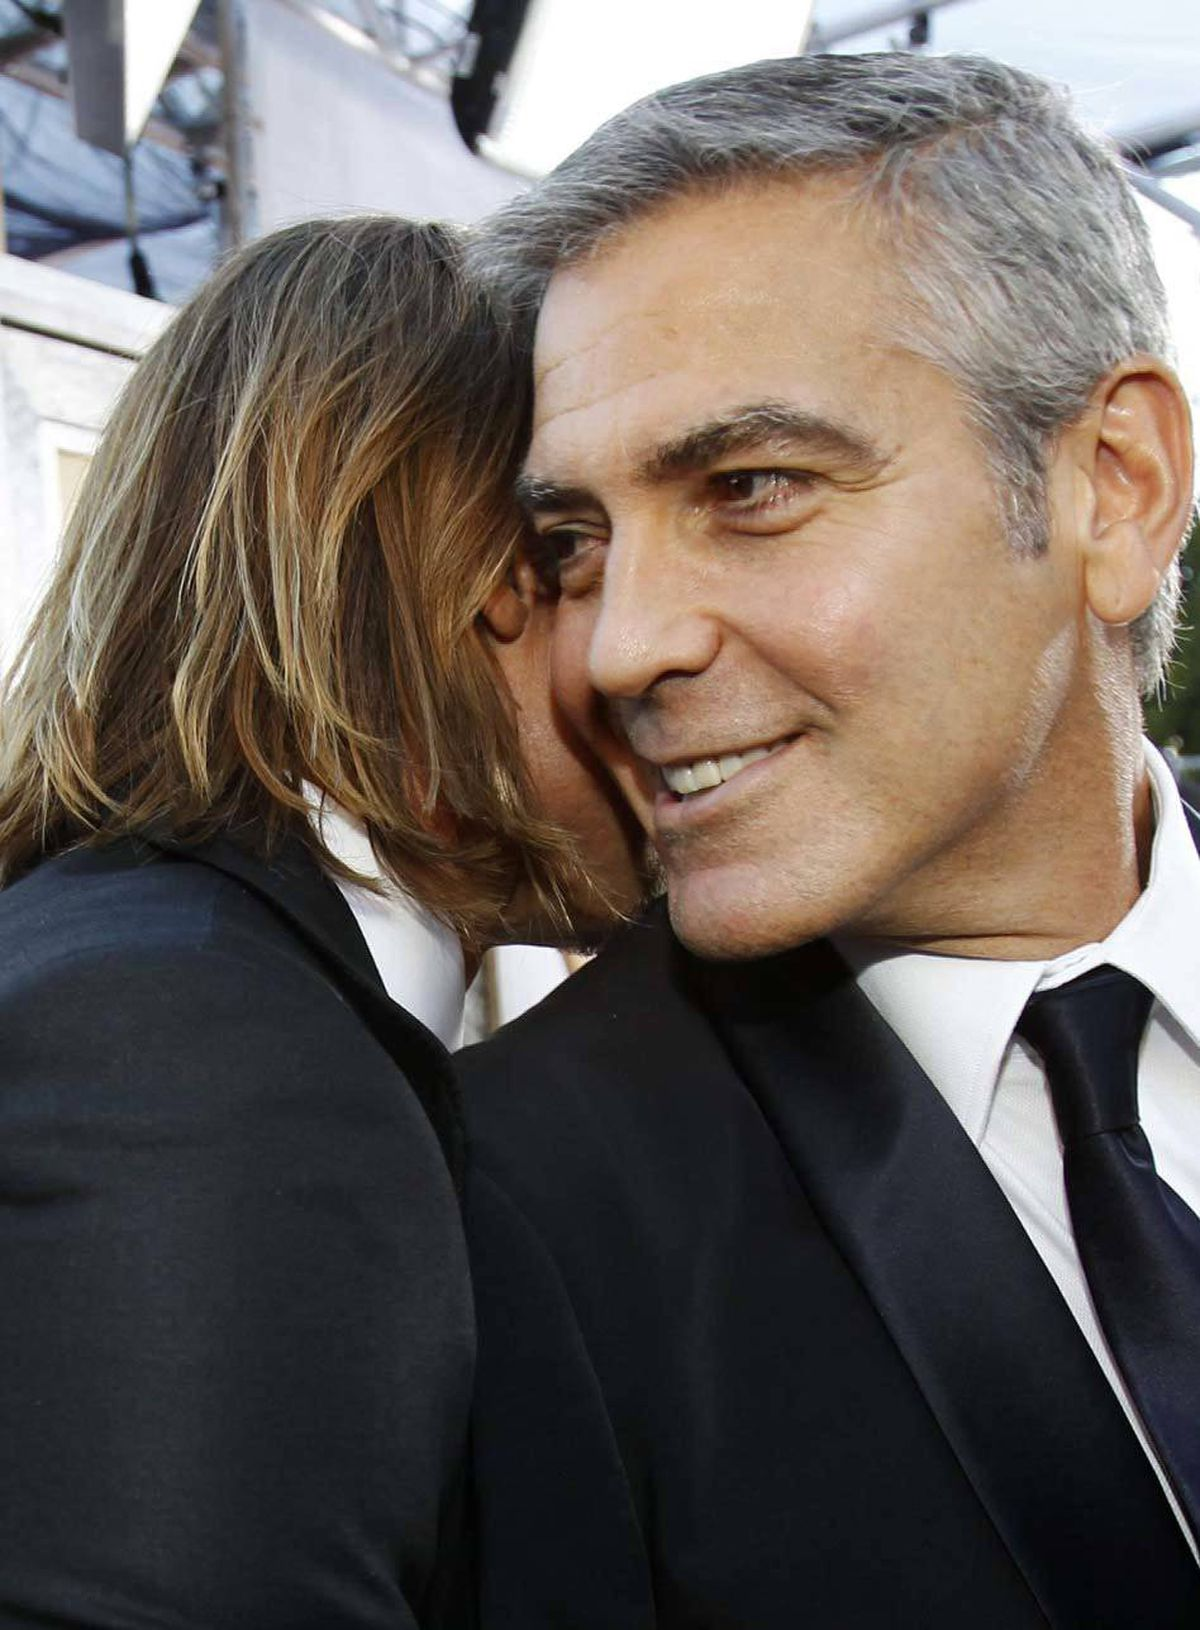 George Clooney and Brad Pitt compare shaves at the SAG awards in Los Angeles on Sunday.